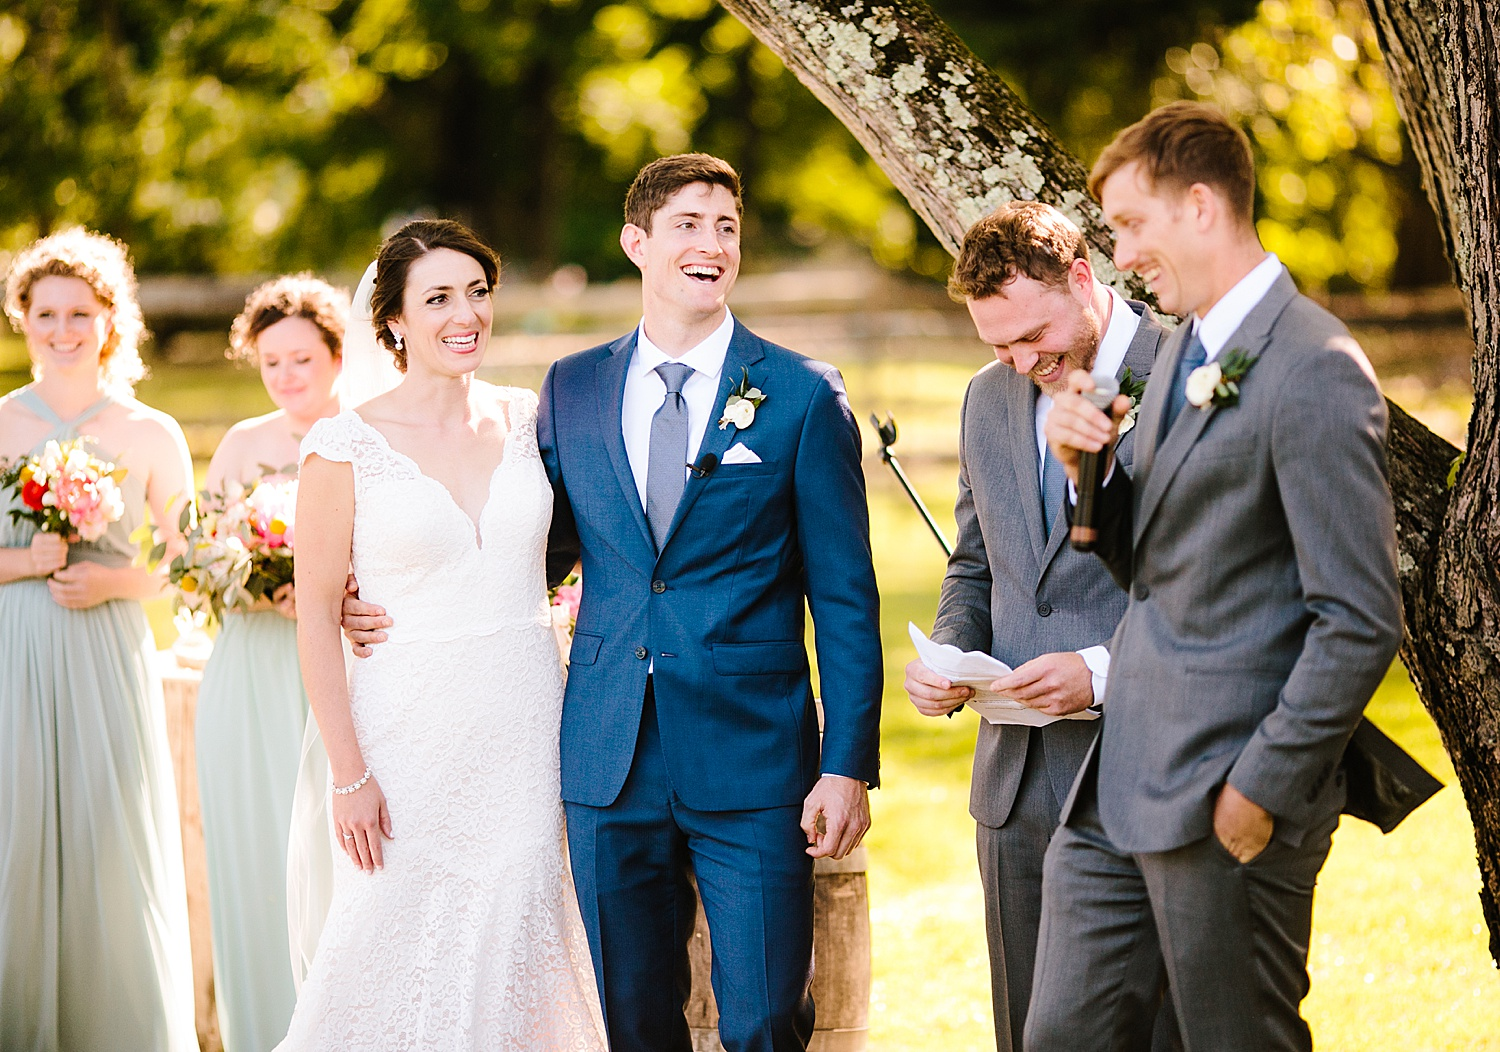 emilyaustin_rosebank_winery_newhope_farm_wedding_image087.jpg